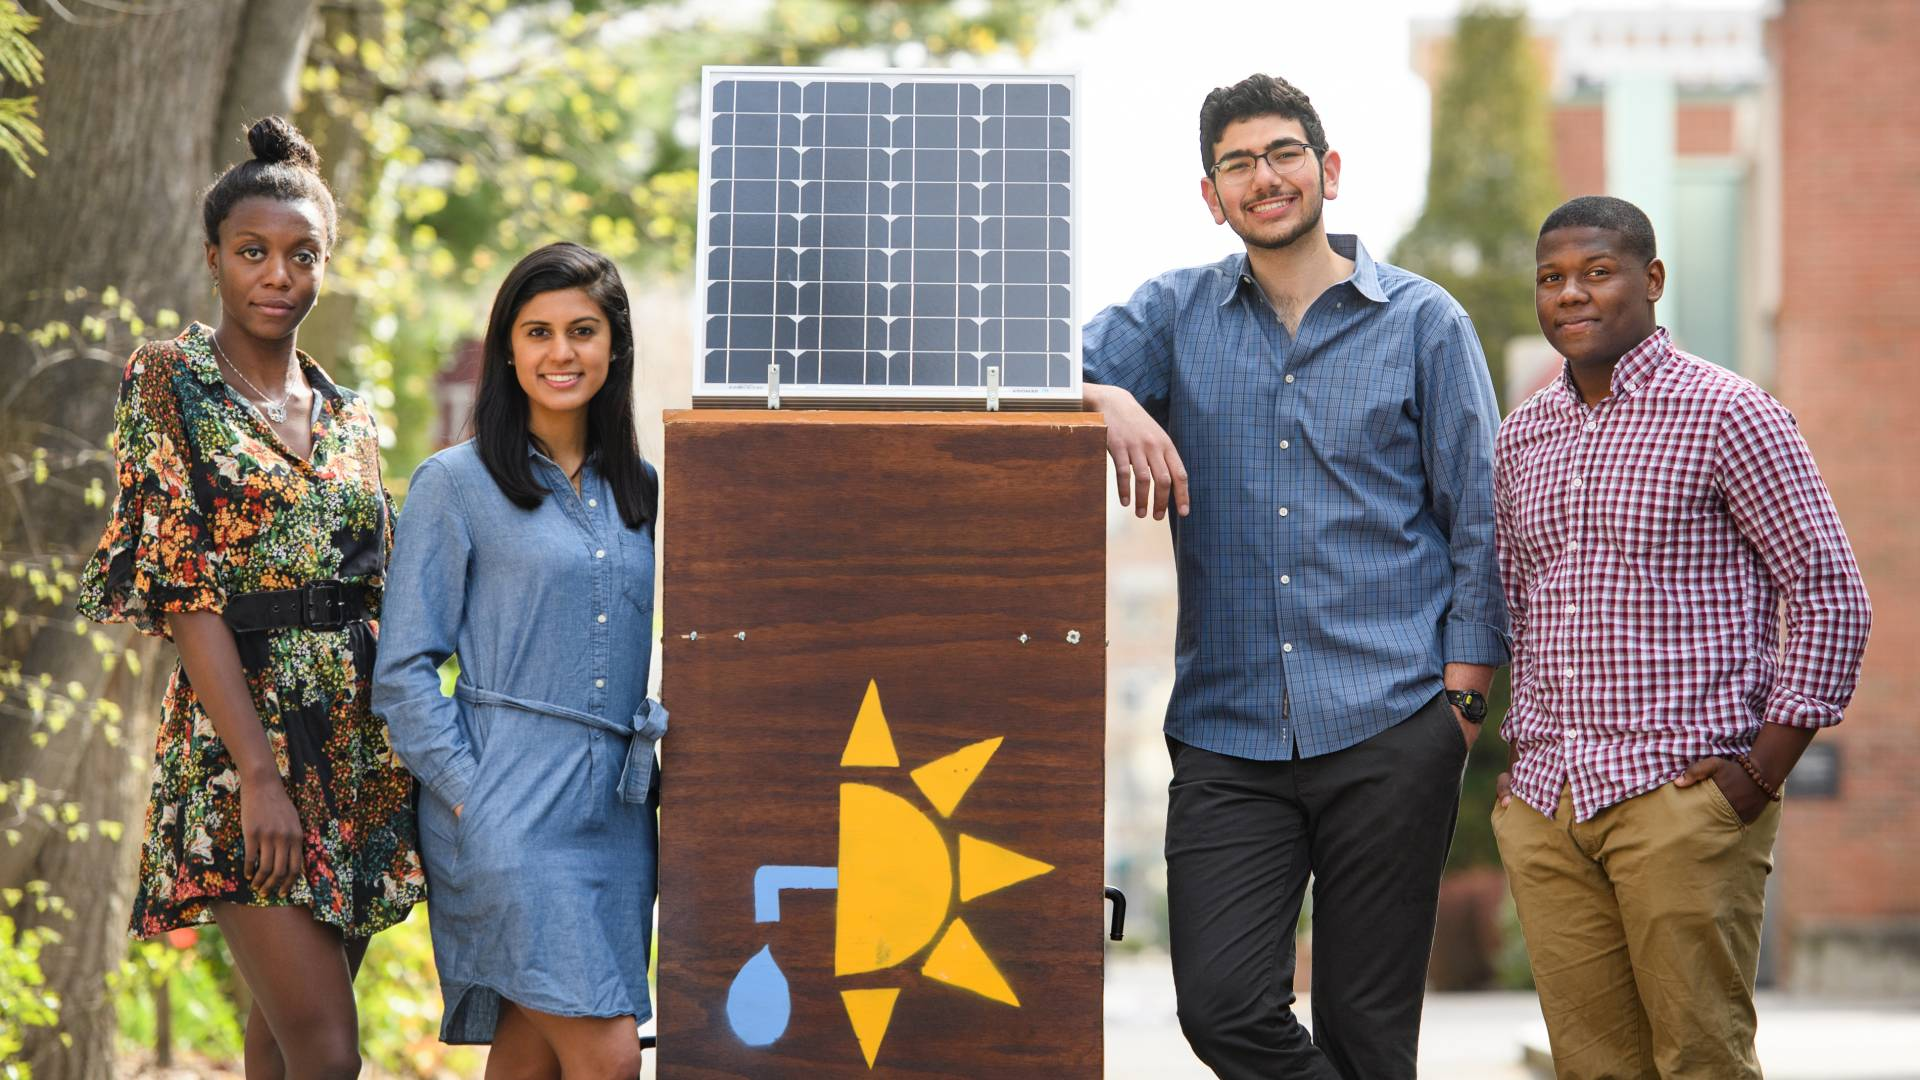 Startup culture meets social good as Princeton students